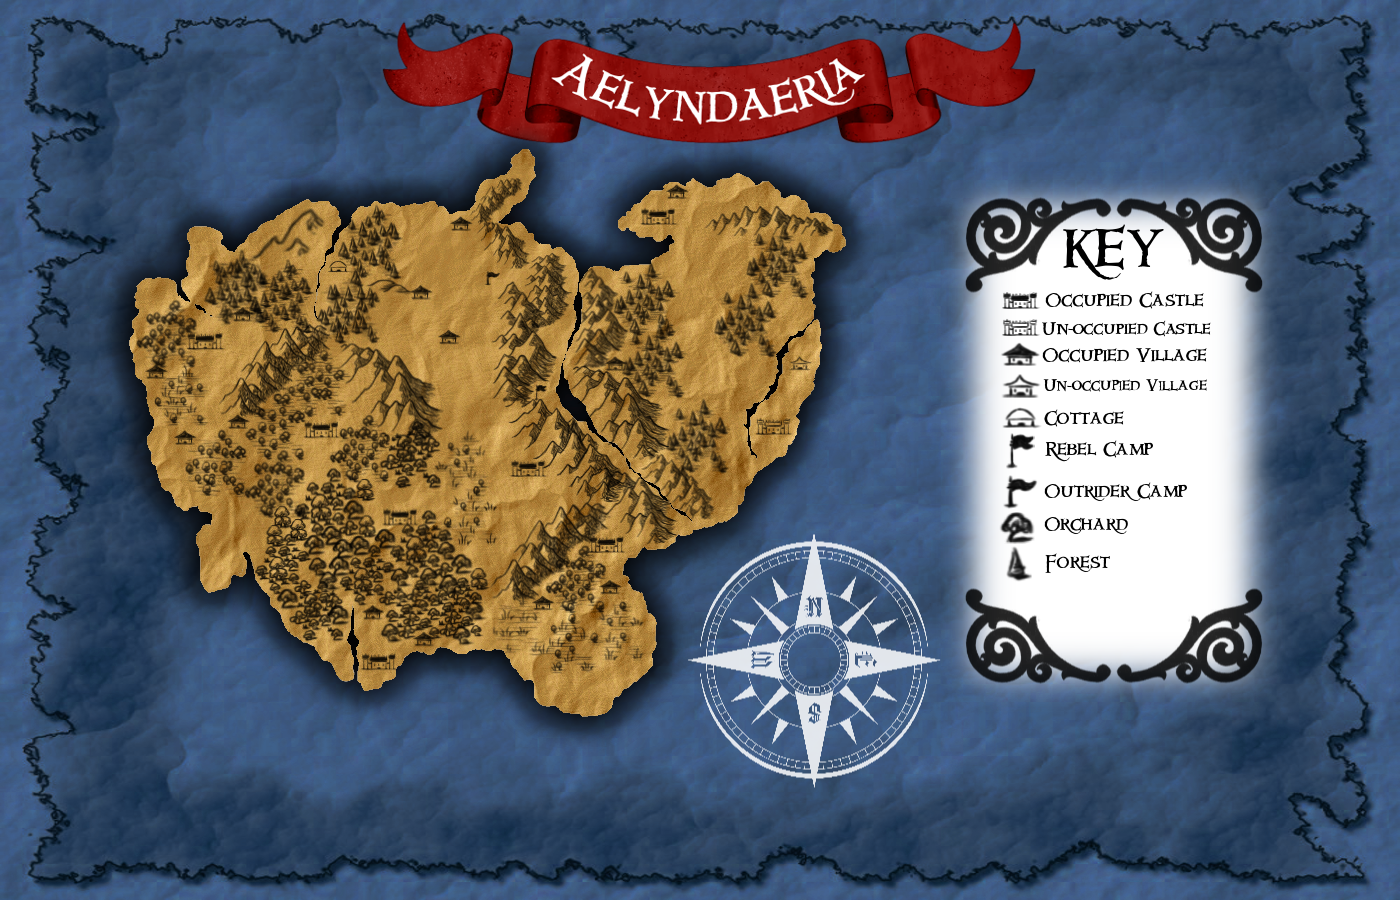 A map for my fantasy world, The Eight Realms of Aelyndaeria. :) Made in GIMP using brushes from DeviantART.